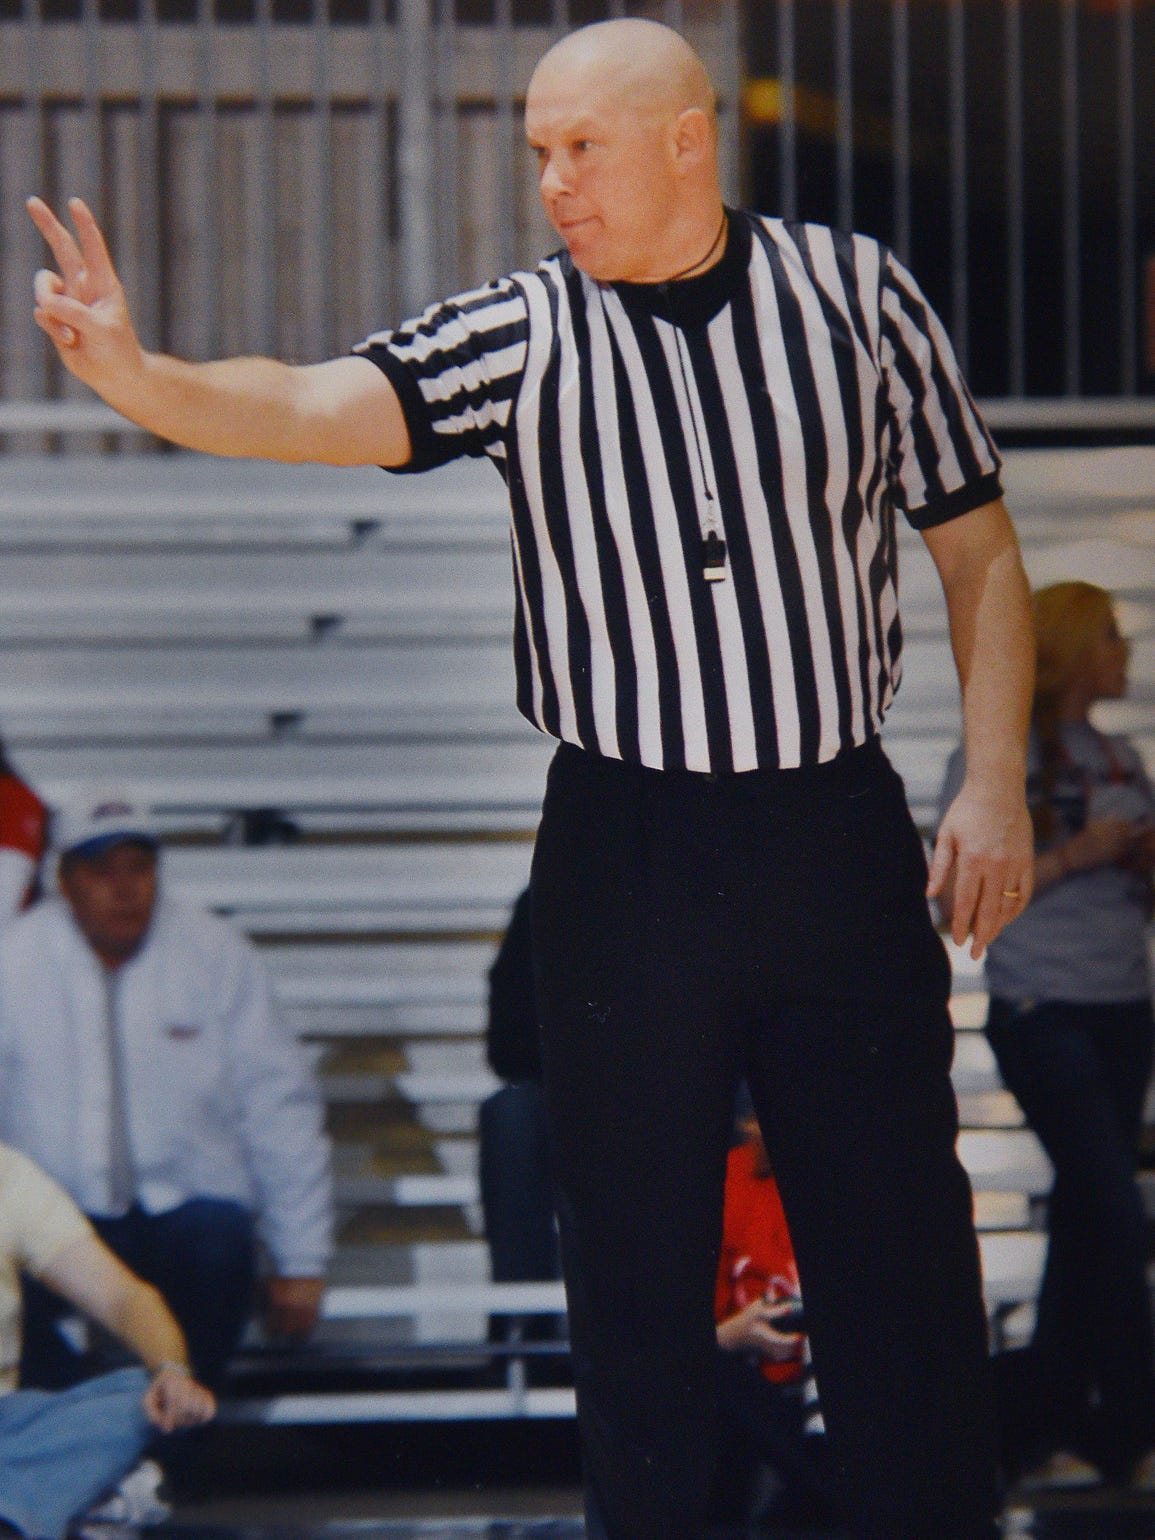 Referee Jeff Schroder shows a photo taken in 2012 of